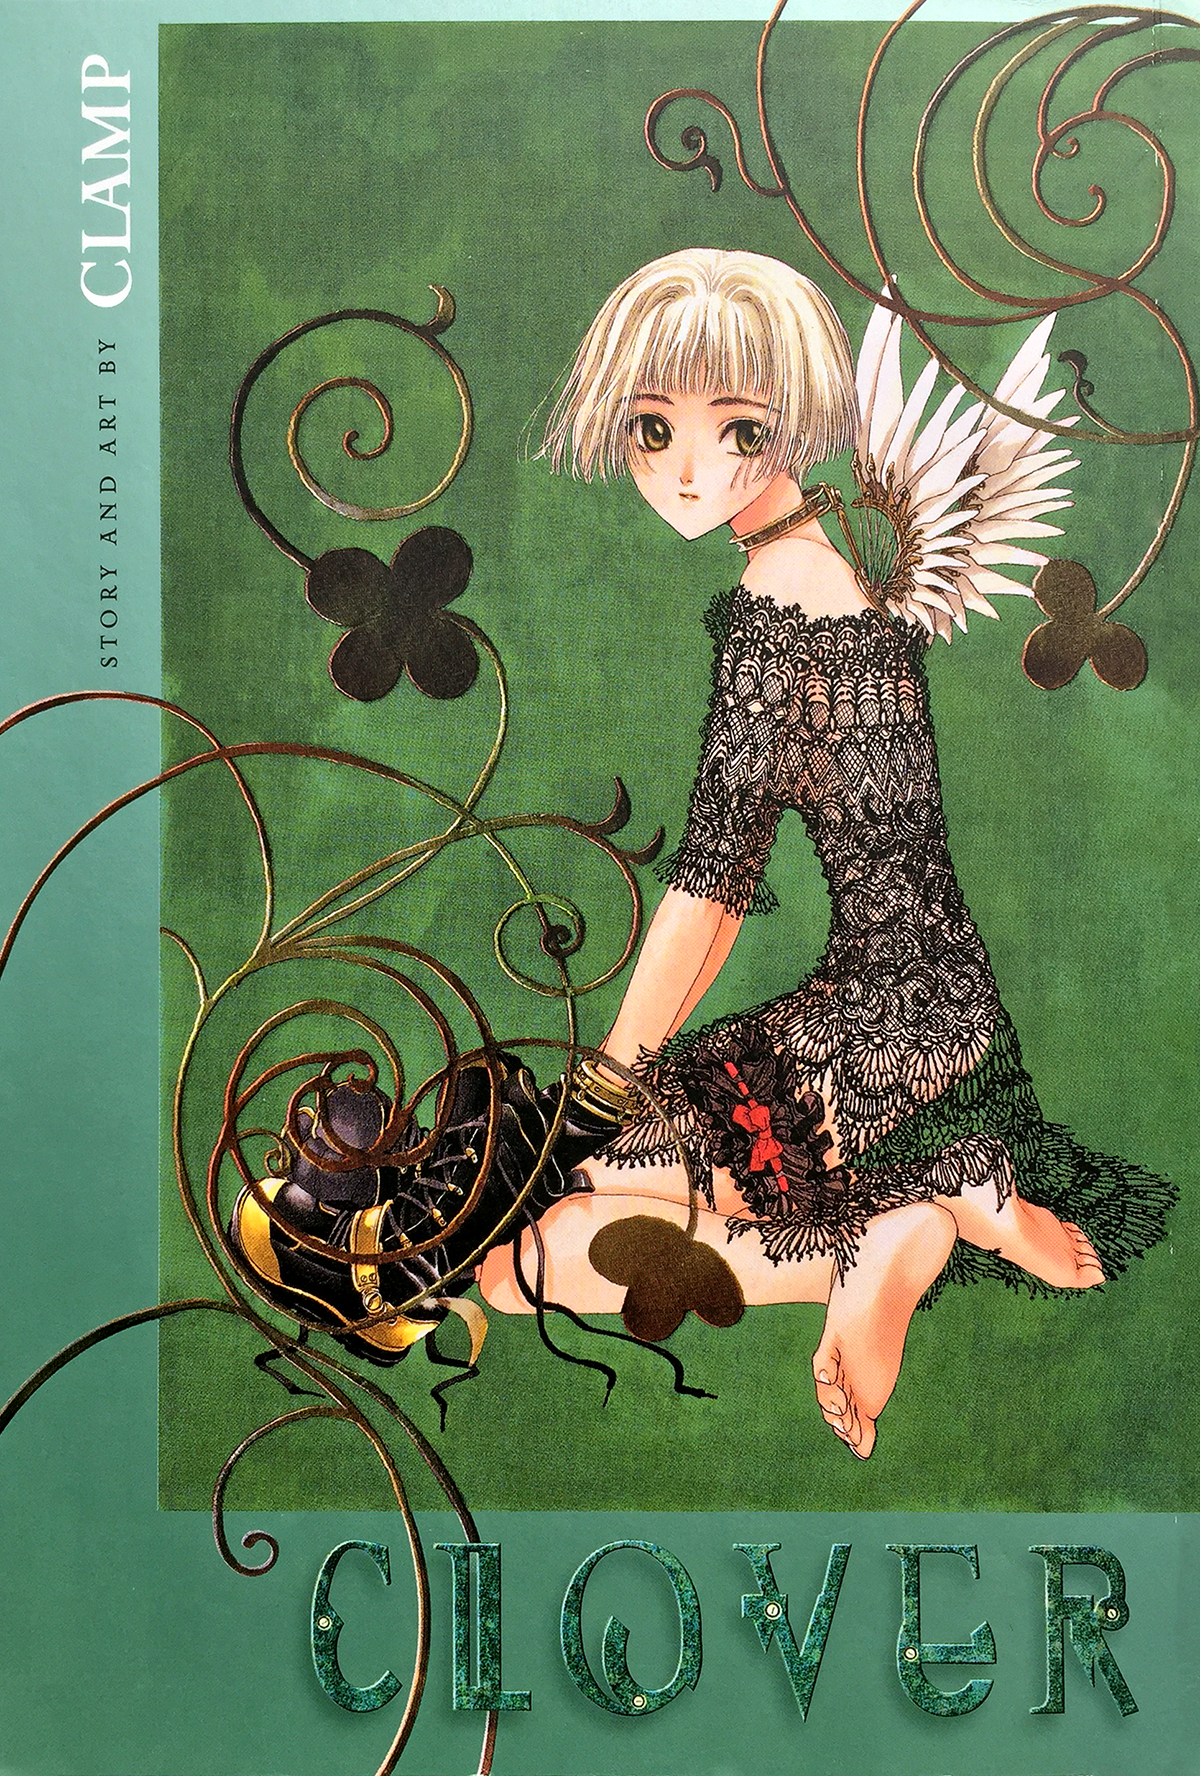 """Clover"" omnibus by Clamp, from Dark Horse Manga."